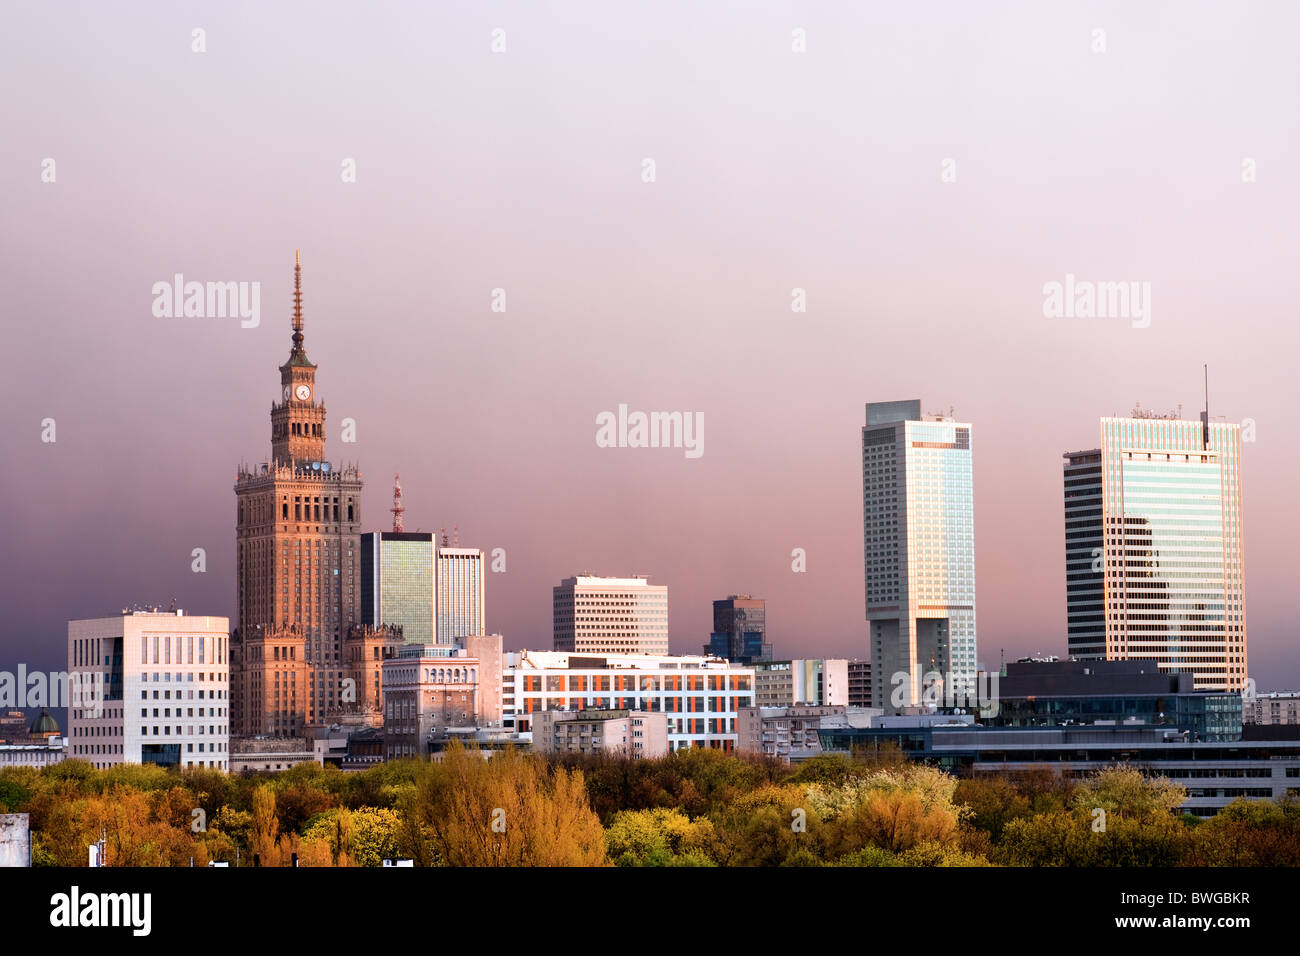 Warsaw, capital city of Poland cityscape, just before the sunset, featuring Palace of Culture and Science, Srodmiescie Stock Photo